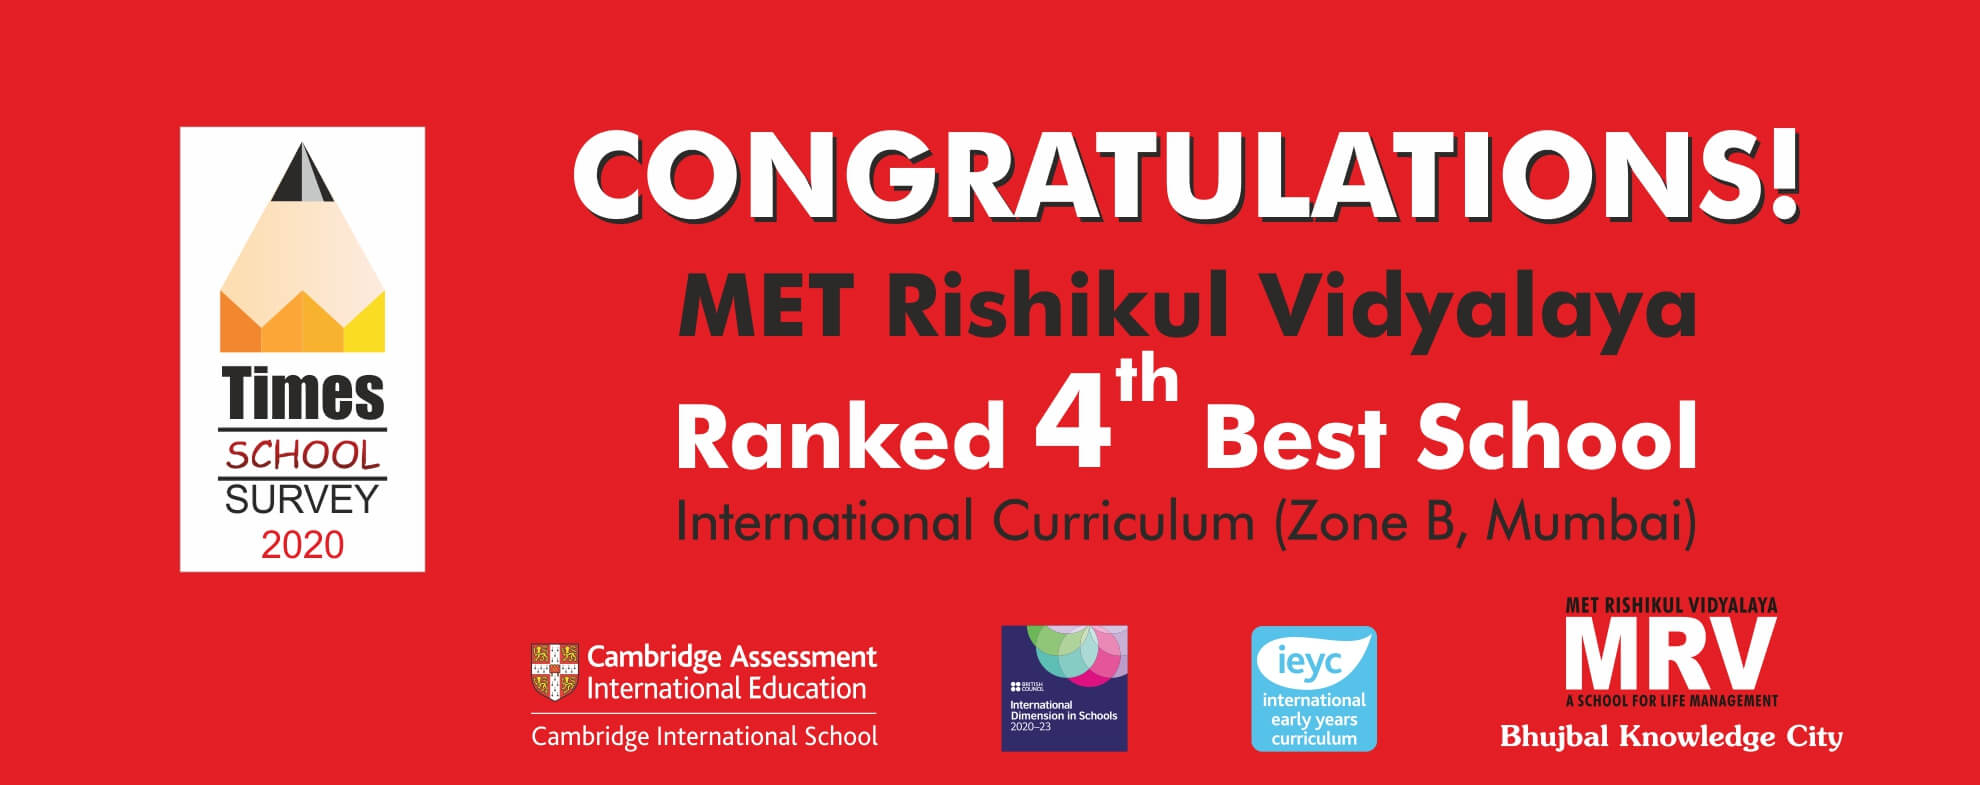 MRV Ranked 4th Best School